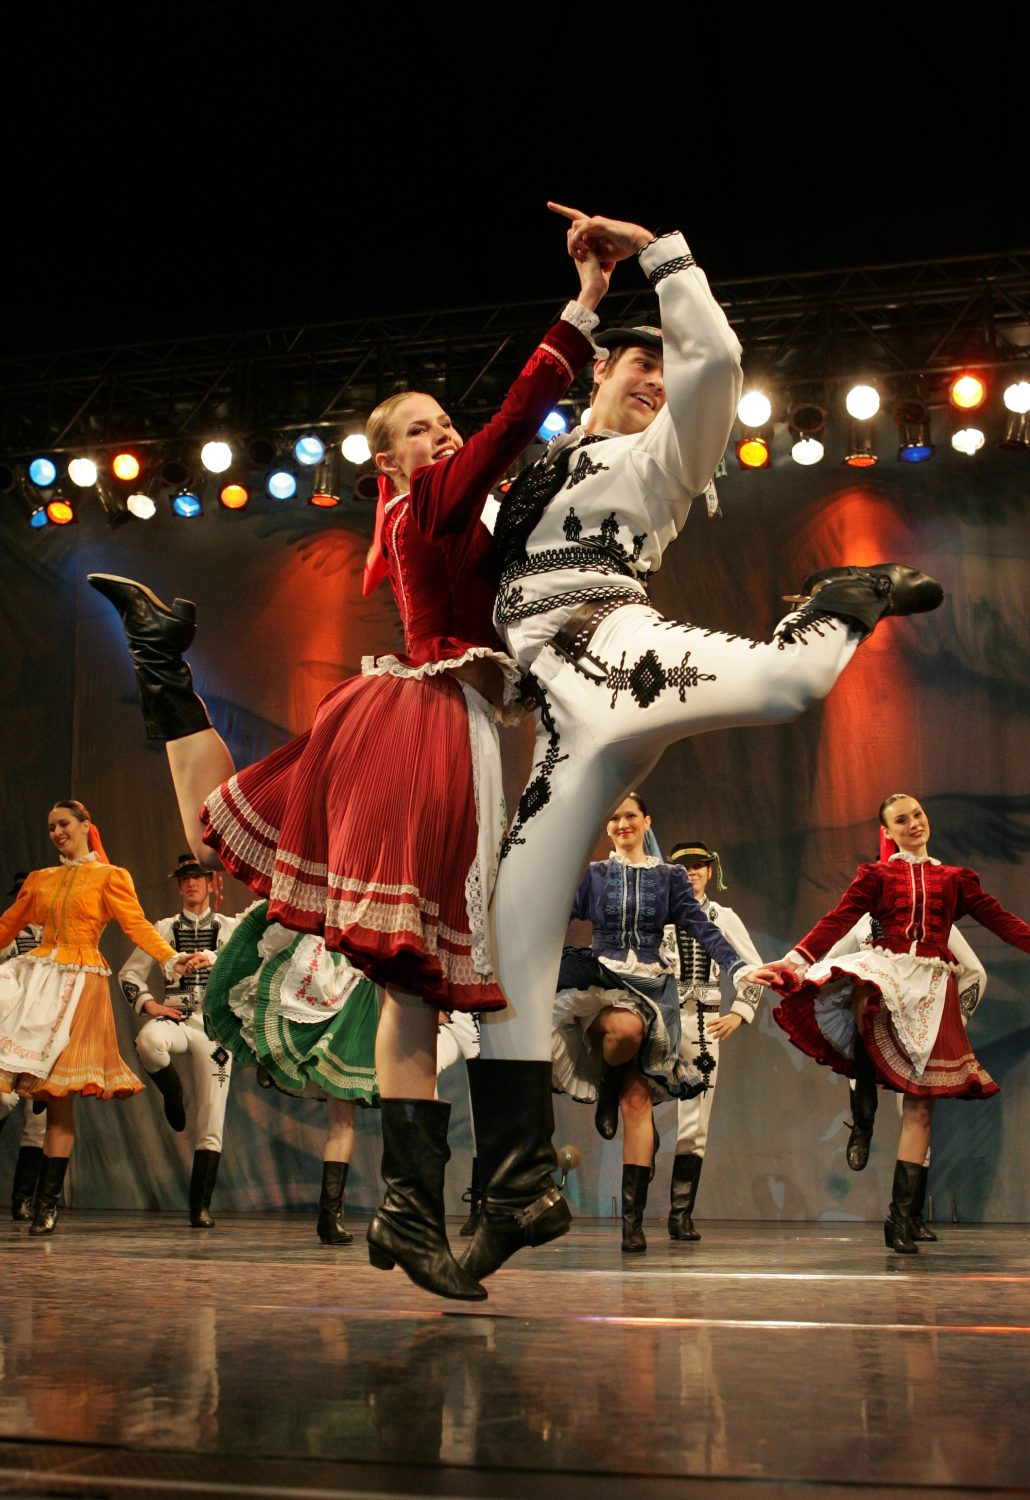 Lúčnica, Saris polka (photo by Peter Brenkus)